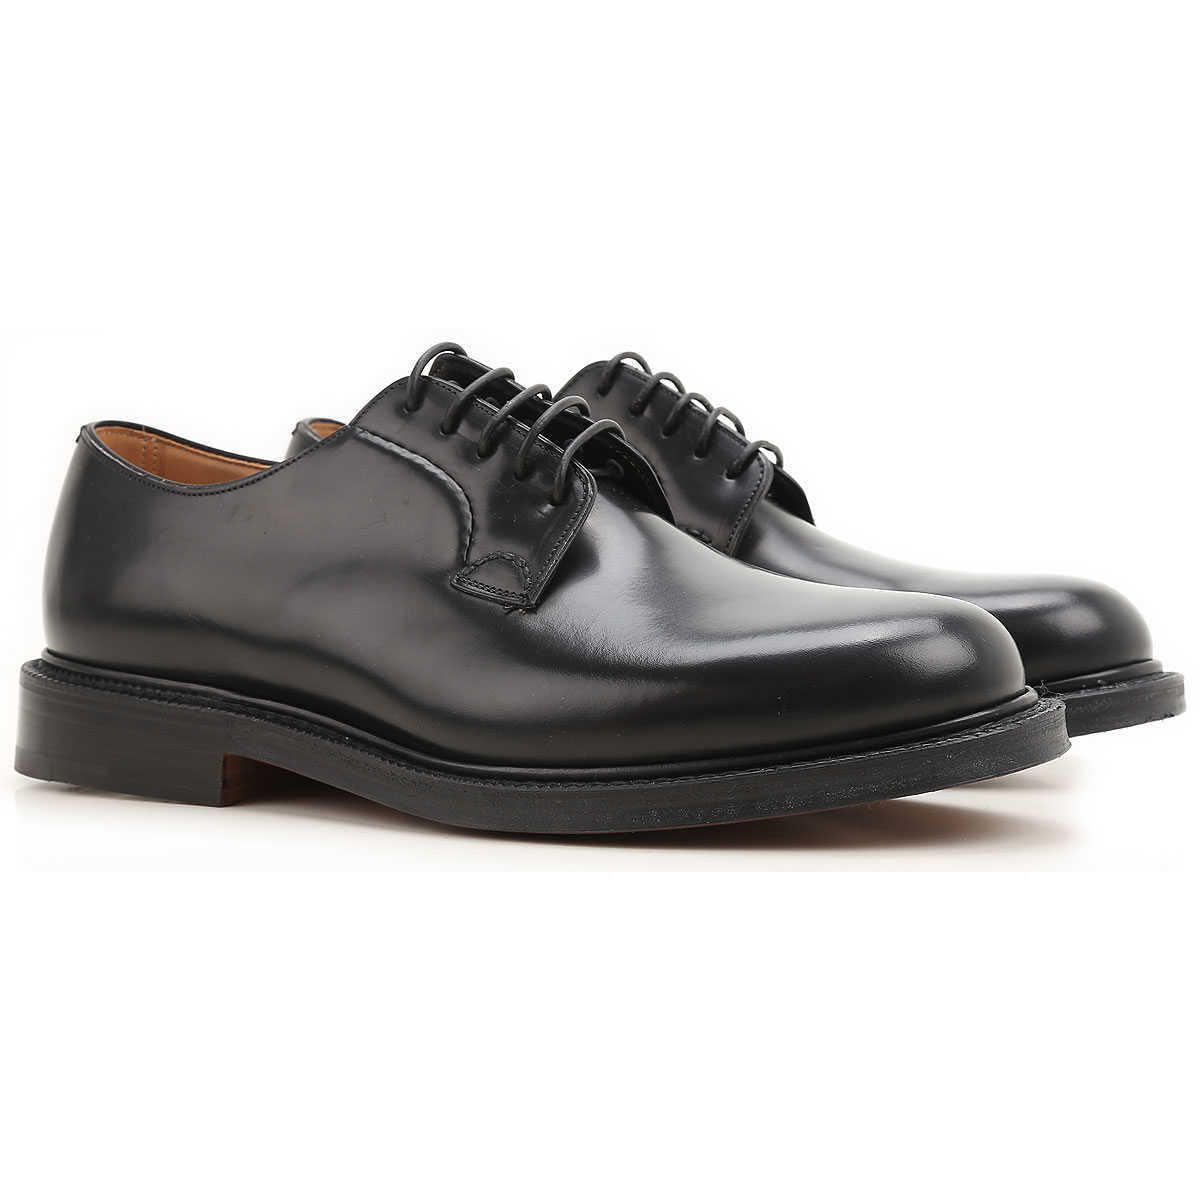 Church's Lace Up Shoes for Men Oxfords 10 10.5 6 7 8 8.5 9 Derbies and Brogues UK - GOOFASH